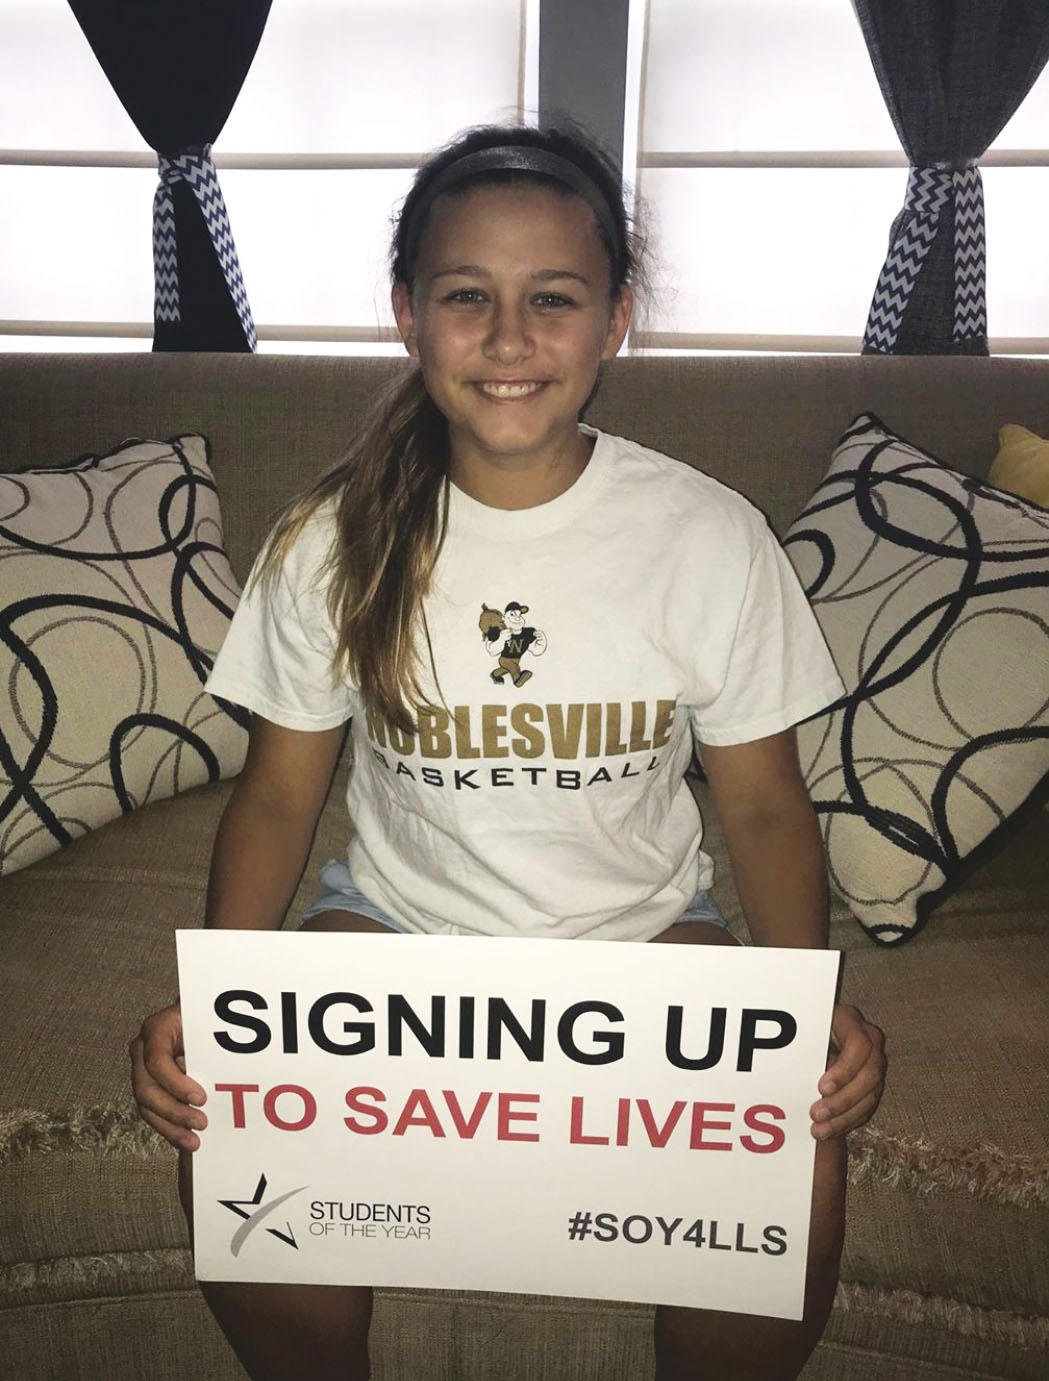 Abby Haley encourages her social media following to donate to the Leukemia and Lymphoma Society. On her own, she raised almost $80,000.